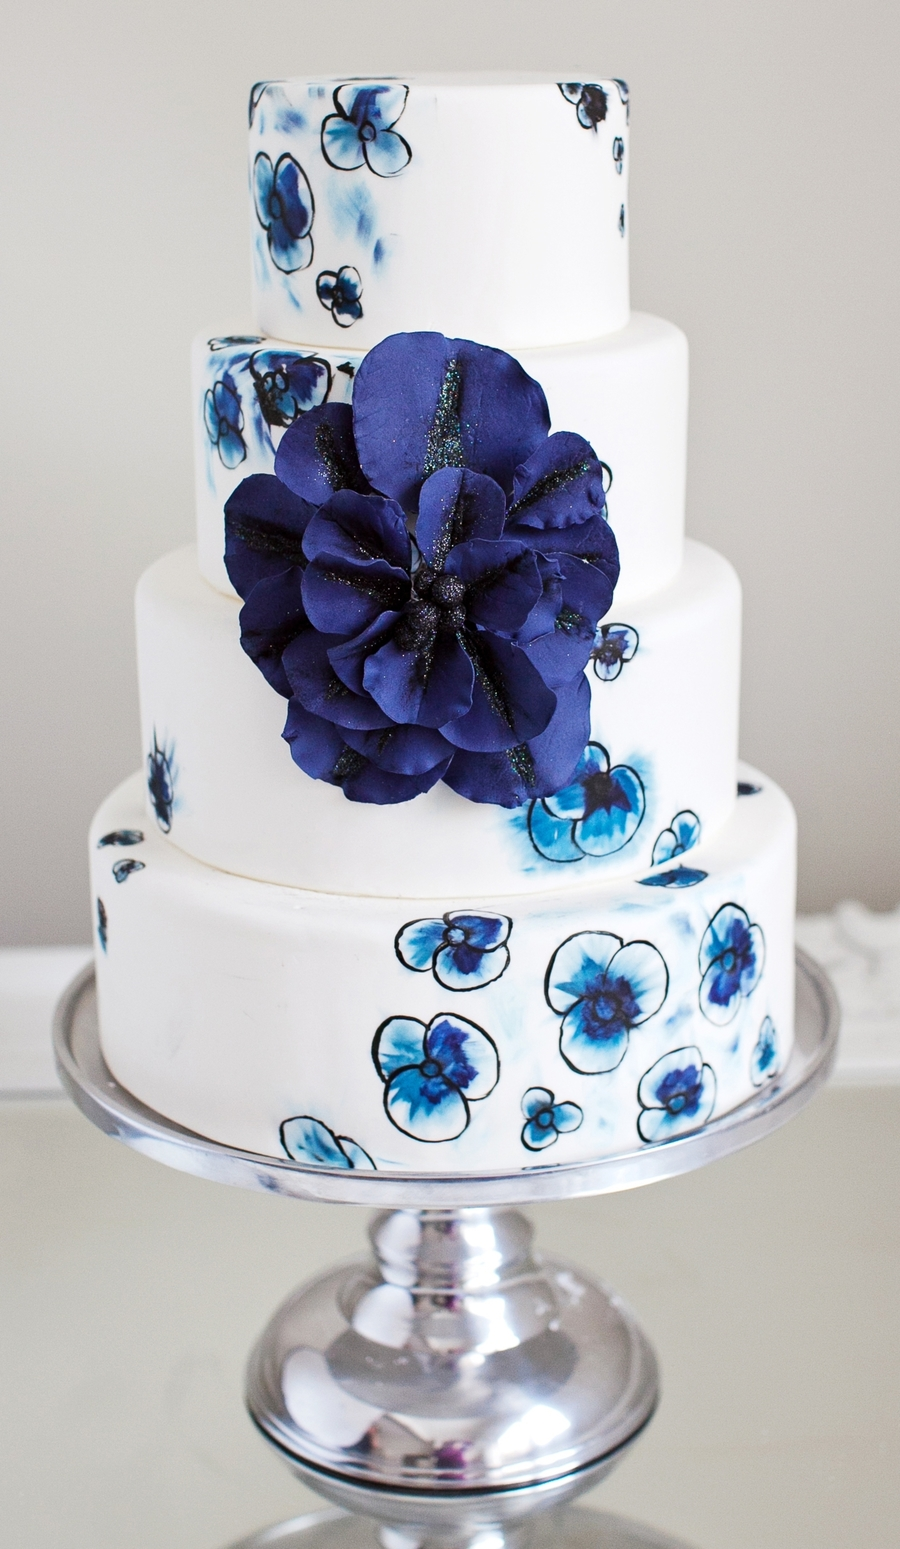 Hues Of Blues on Cake Central